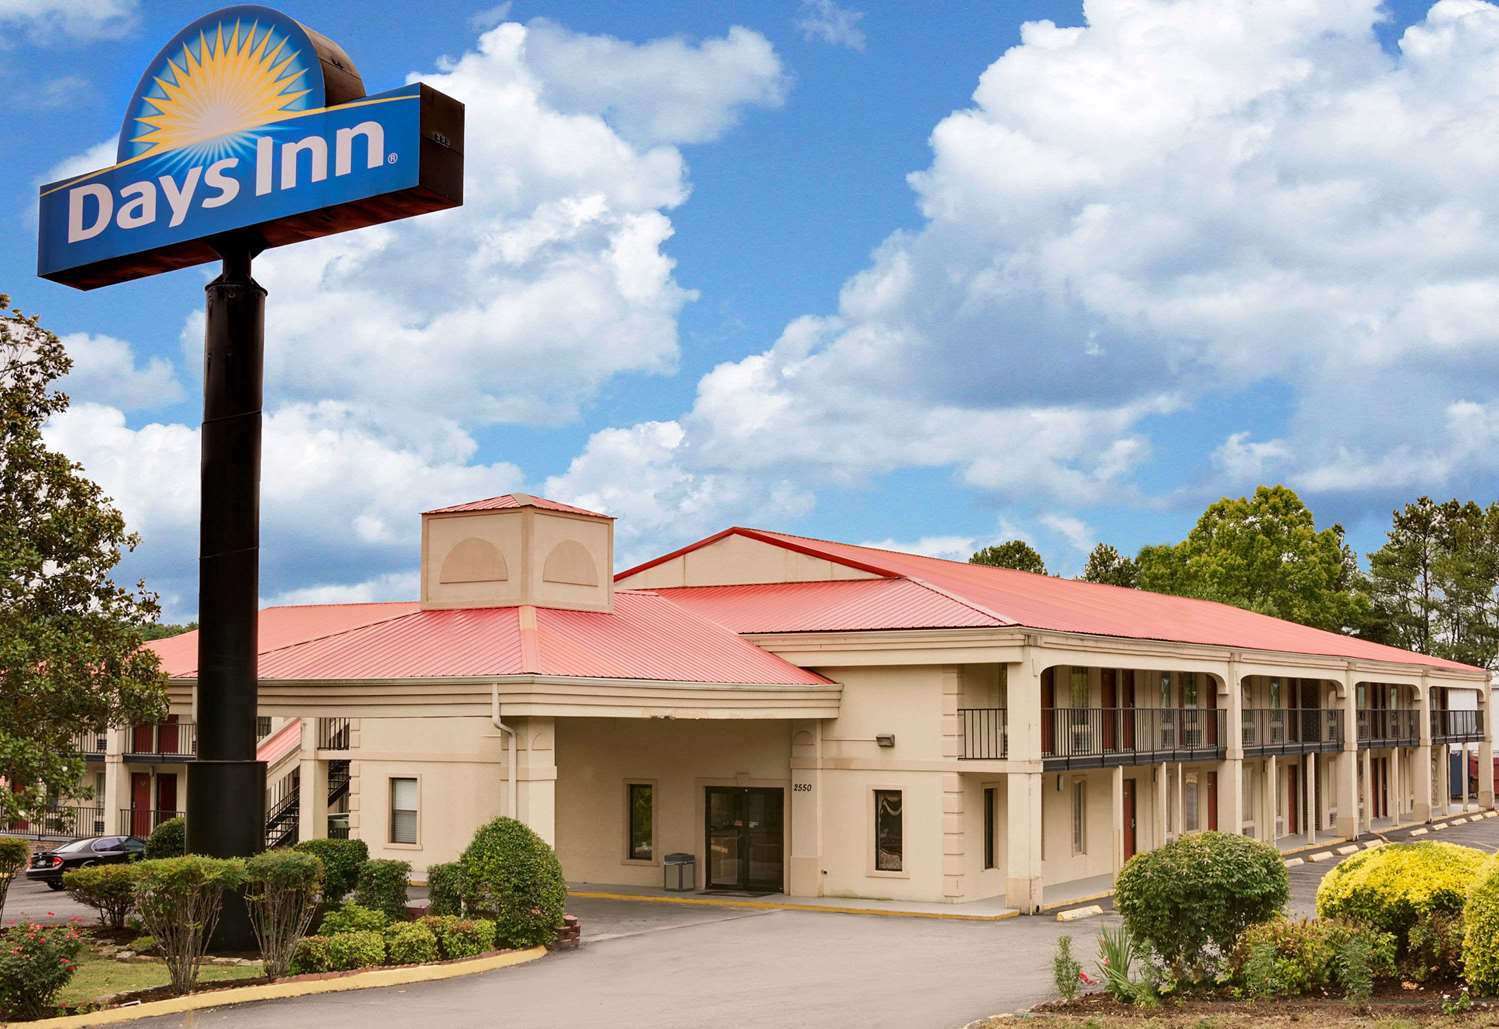 days inn cleveland tn see discounts. Black Bedroom Furniture Sets. Home Design Ideas